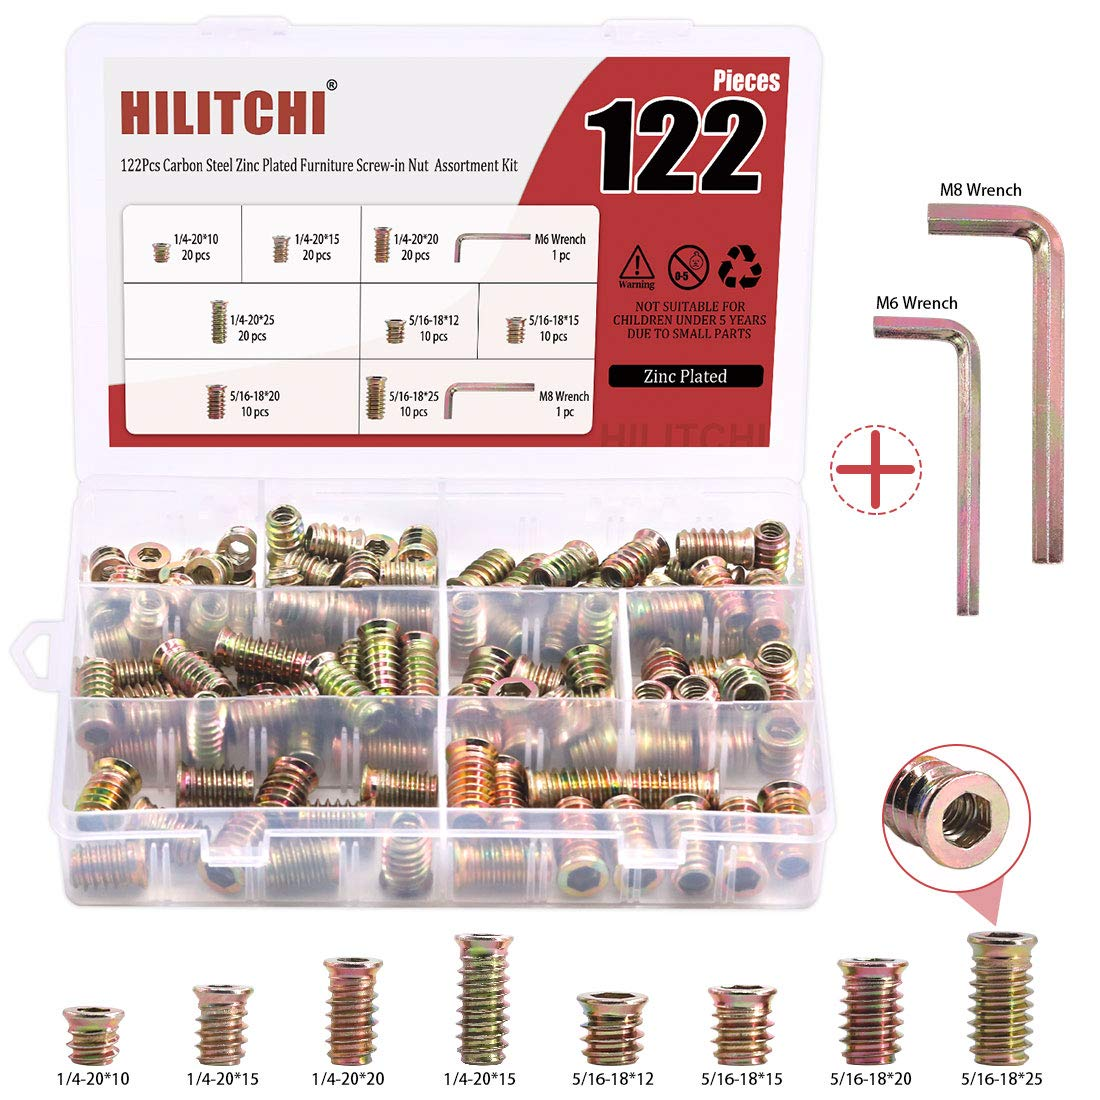 Hilitchi Threaded Inserts Nuts Zinc Plated Furniture Screw in Nut for Wood Furniture Bolt Fastener Connector Hex Socket Drive Assortment Kit with Bonus Hex Spanner (Assortment Kit-120PCS)